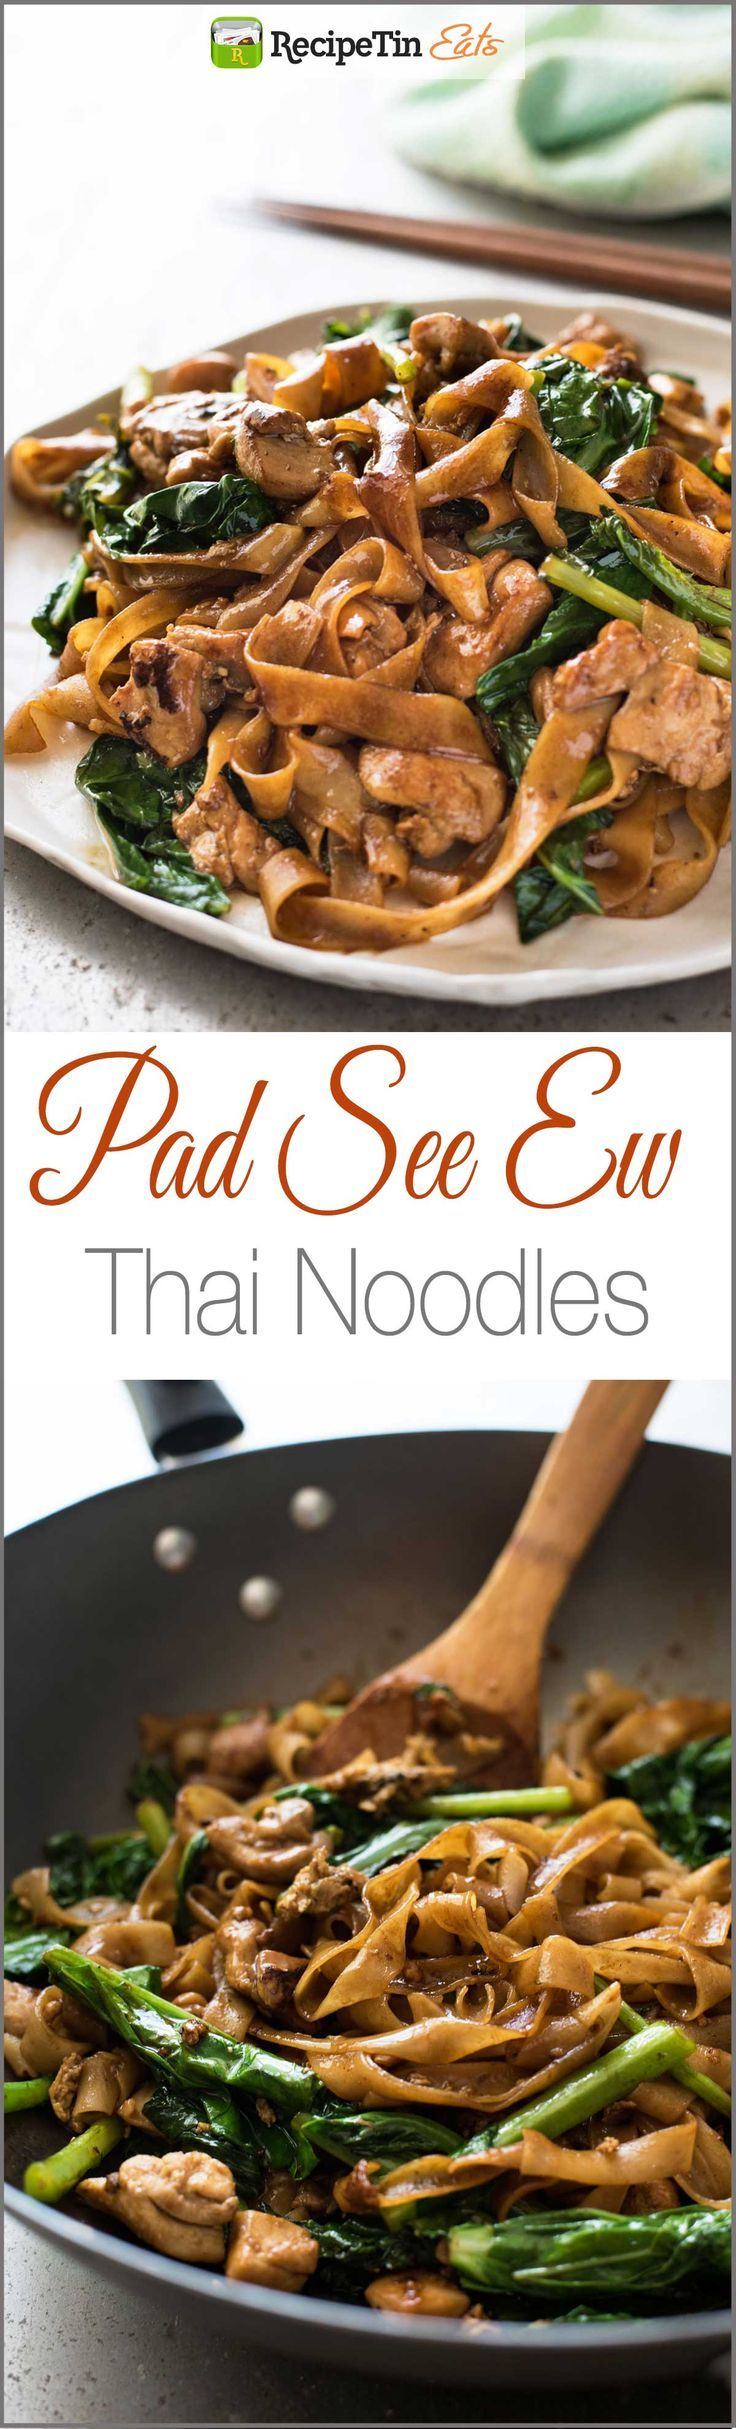 558 best recipes asian inspired images on pinterest sandwiches pad see ew a real restaurant quality thai stir fried noodles recipe its easy forumfinder